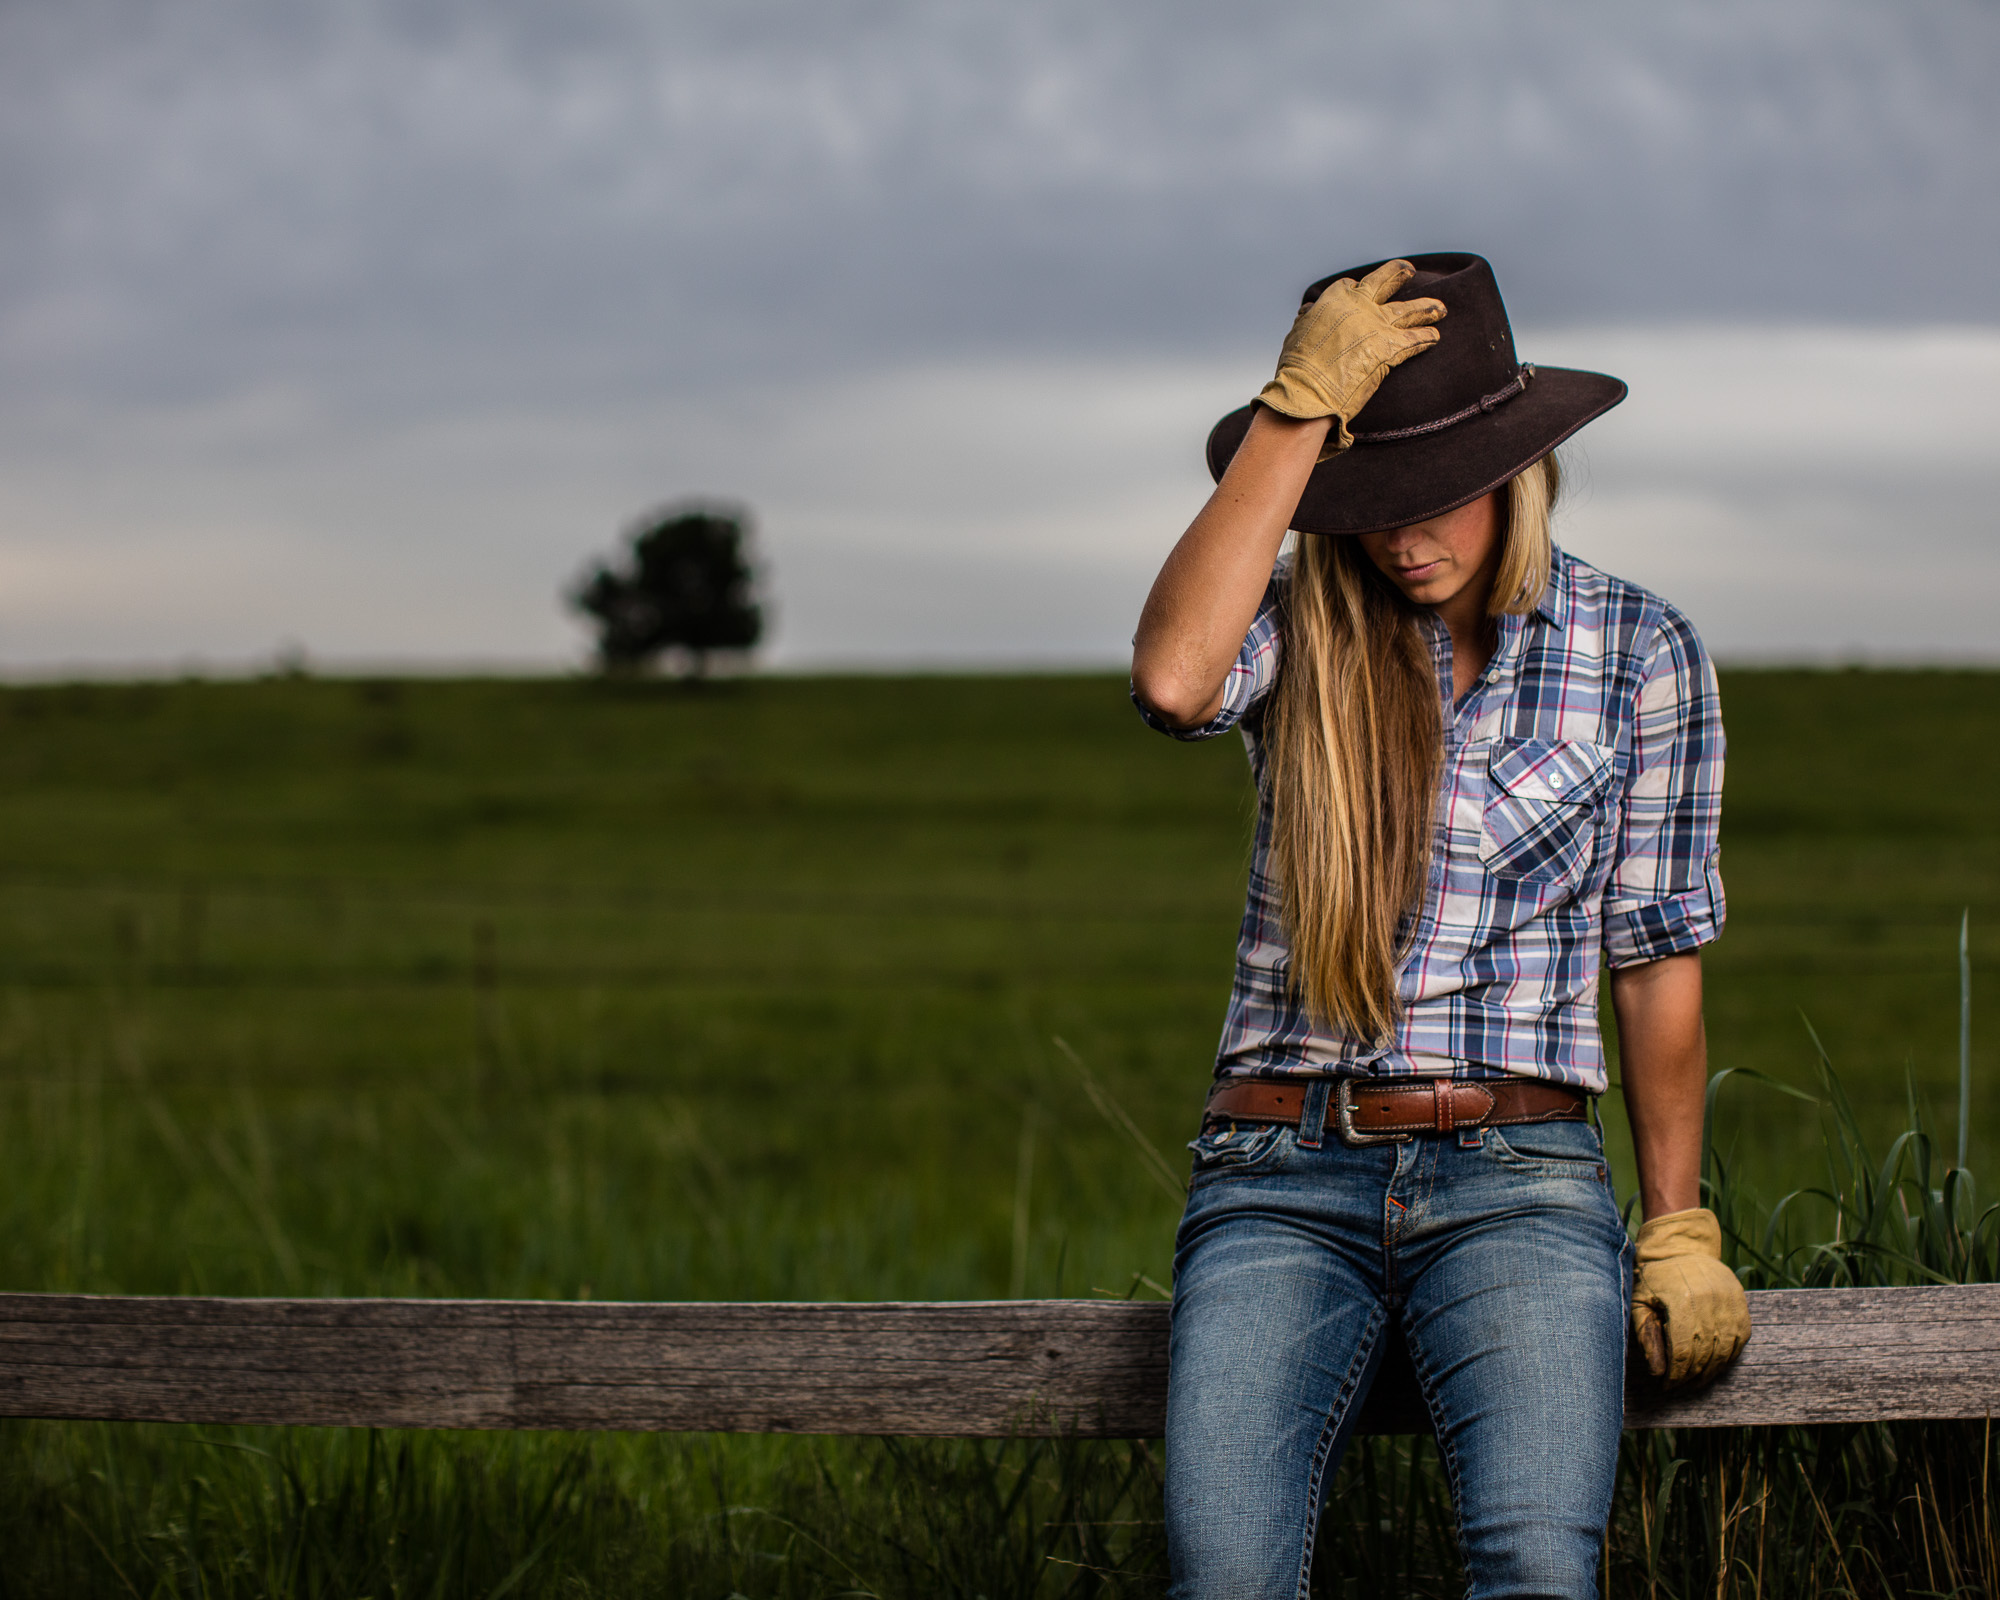 Active Lifestyle photo of blonde cowgirl with stetson hat sitting on fence on ranch.